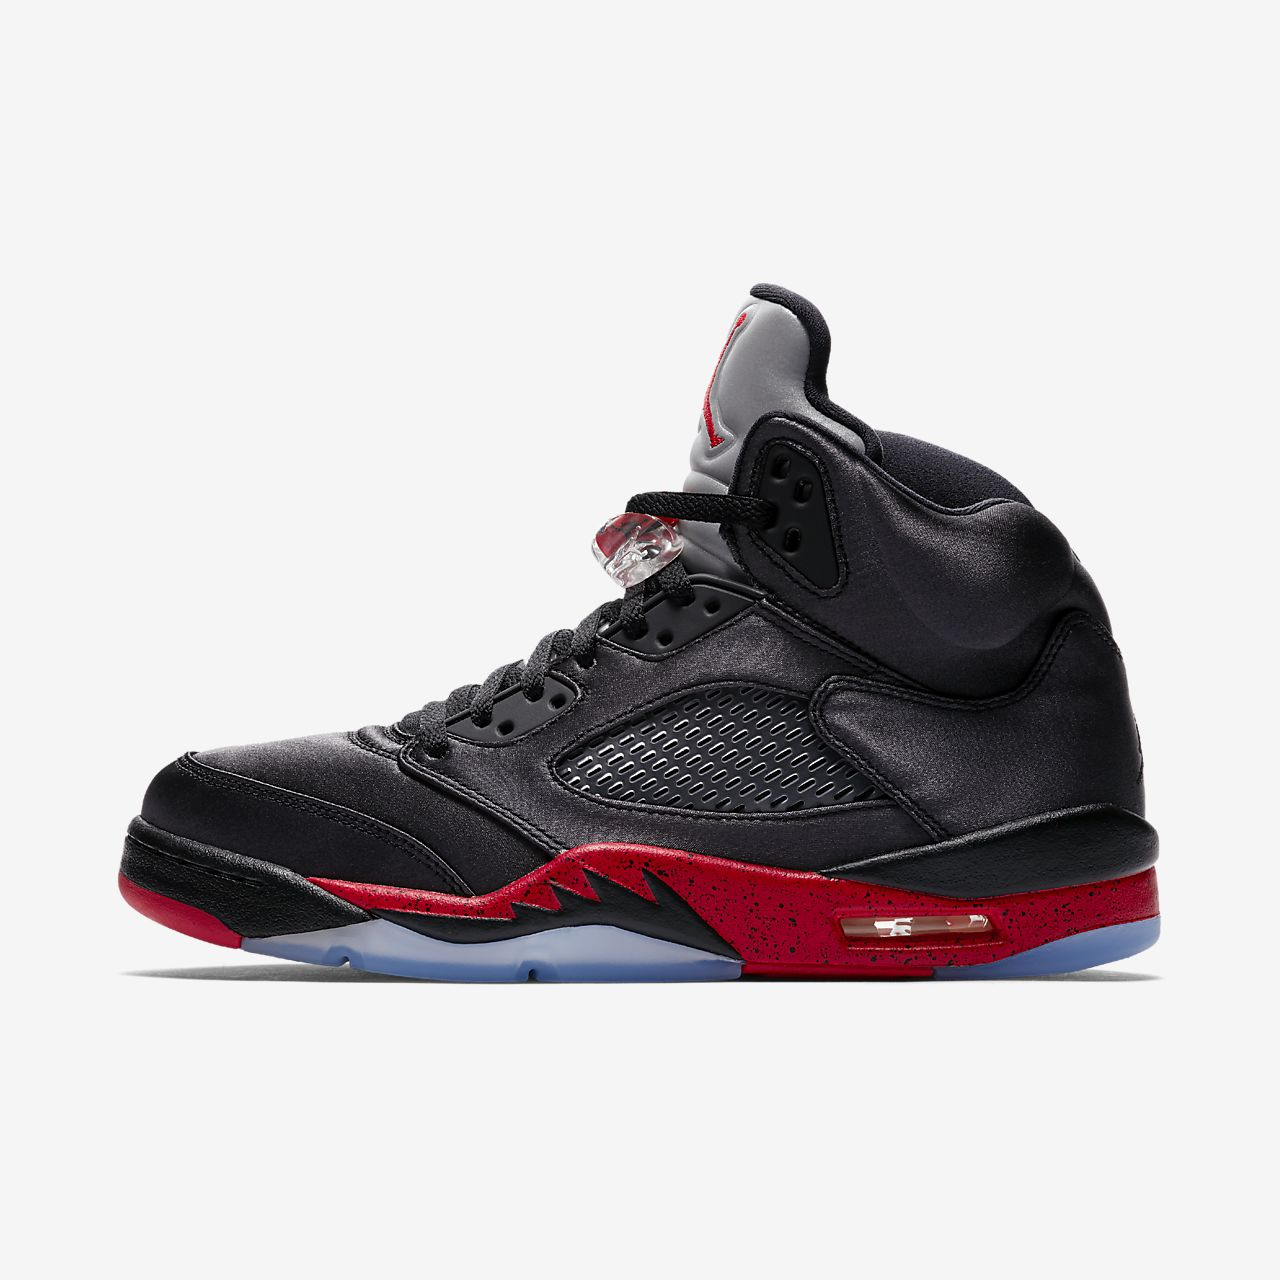 premium selection d1642 cba0e Air Jordan 5 Retro